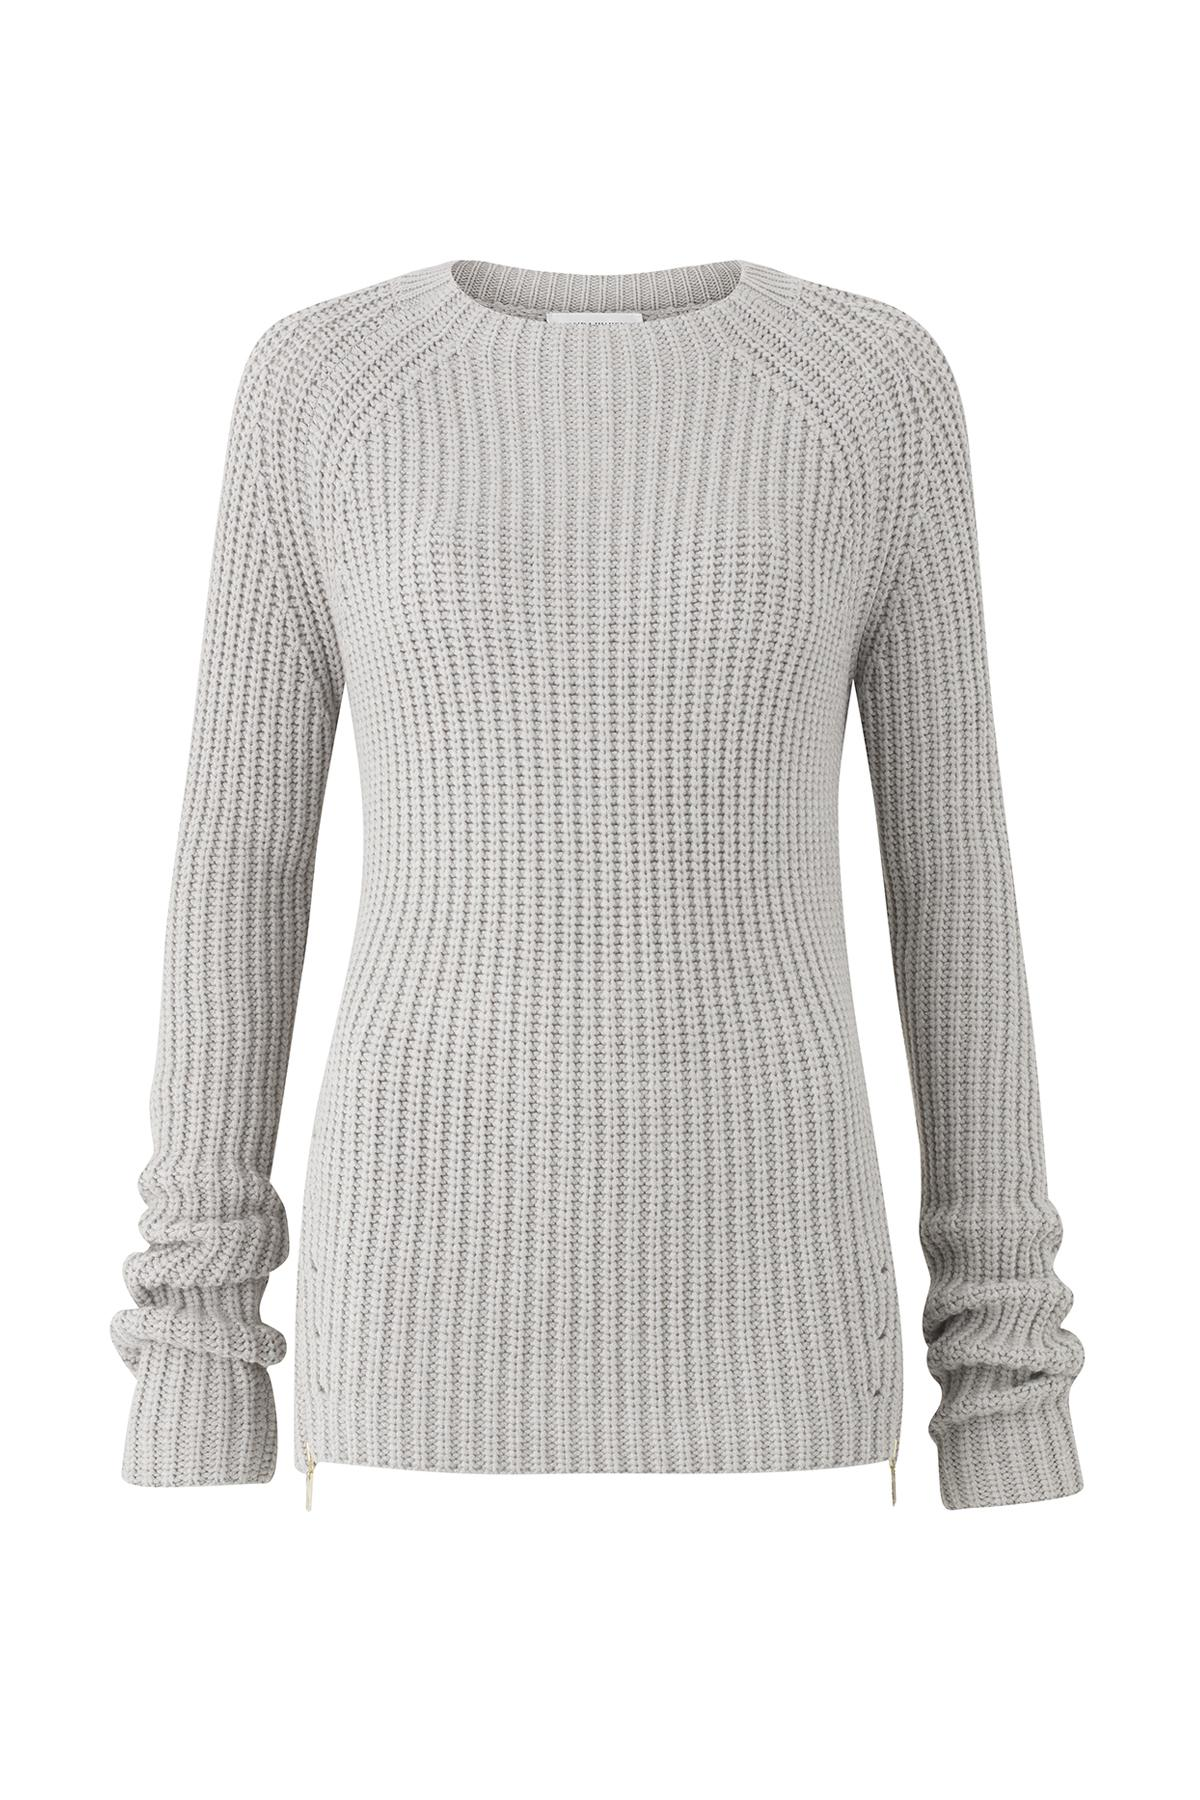 Good Selling Amanda Wakeley Woman Asymmetric Ribbed Merino Wool Sweater Light Gray Size L Amanda Wakeley Outlet Locations ZIwEQxY